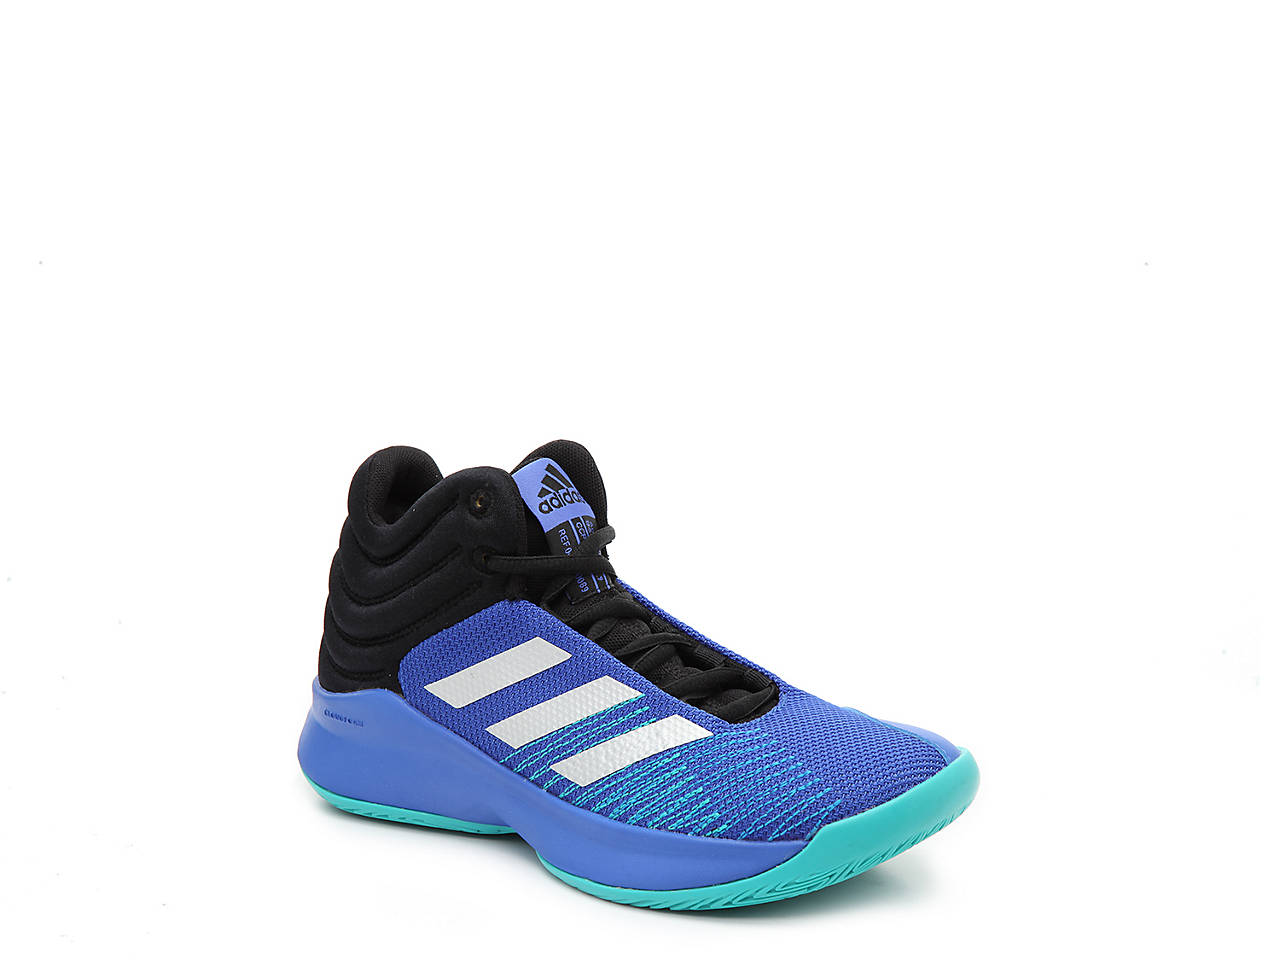 0c09483070757 adidas Pro Spark Toddler   Youth High-Top Basketball Shoe Kids Shoes ...